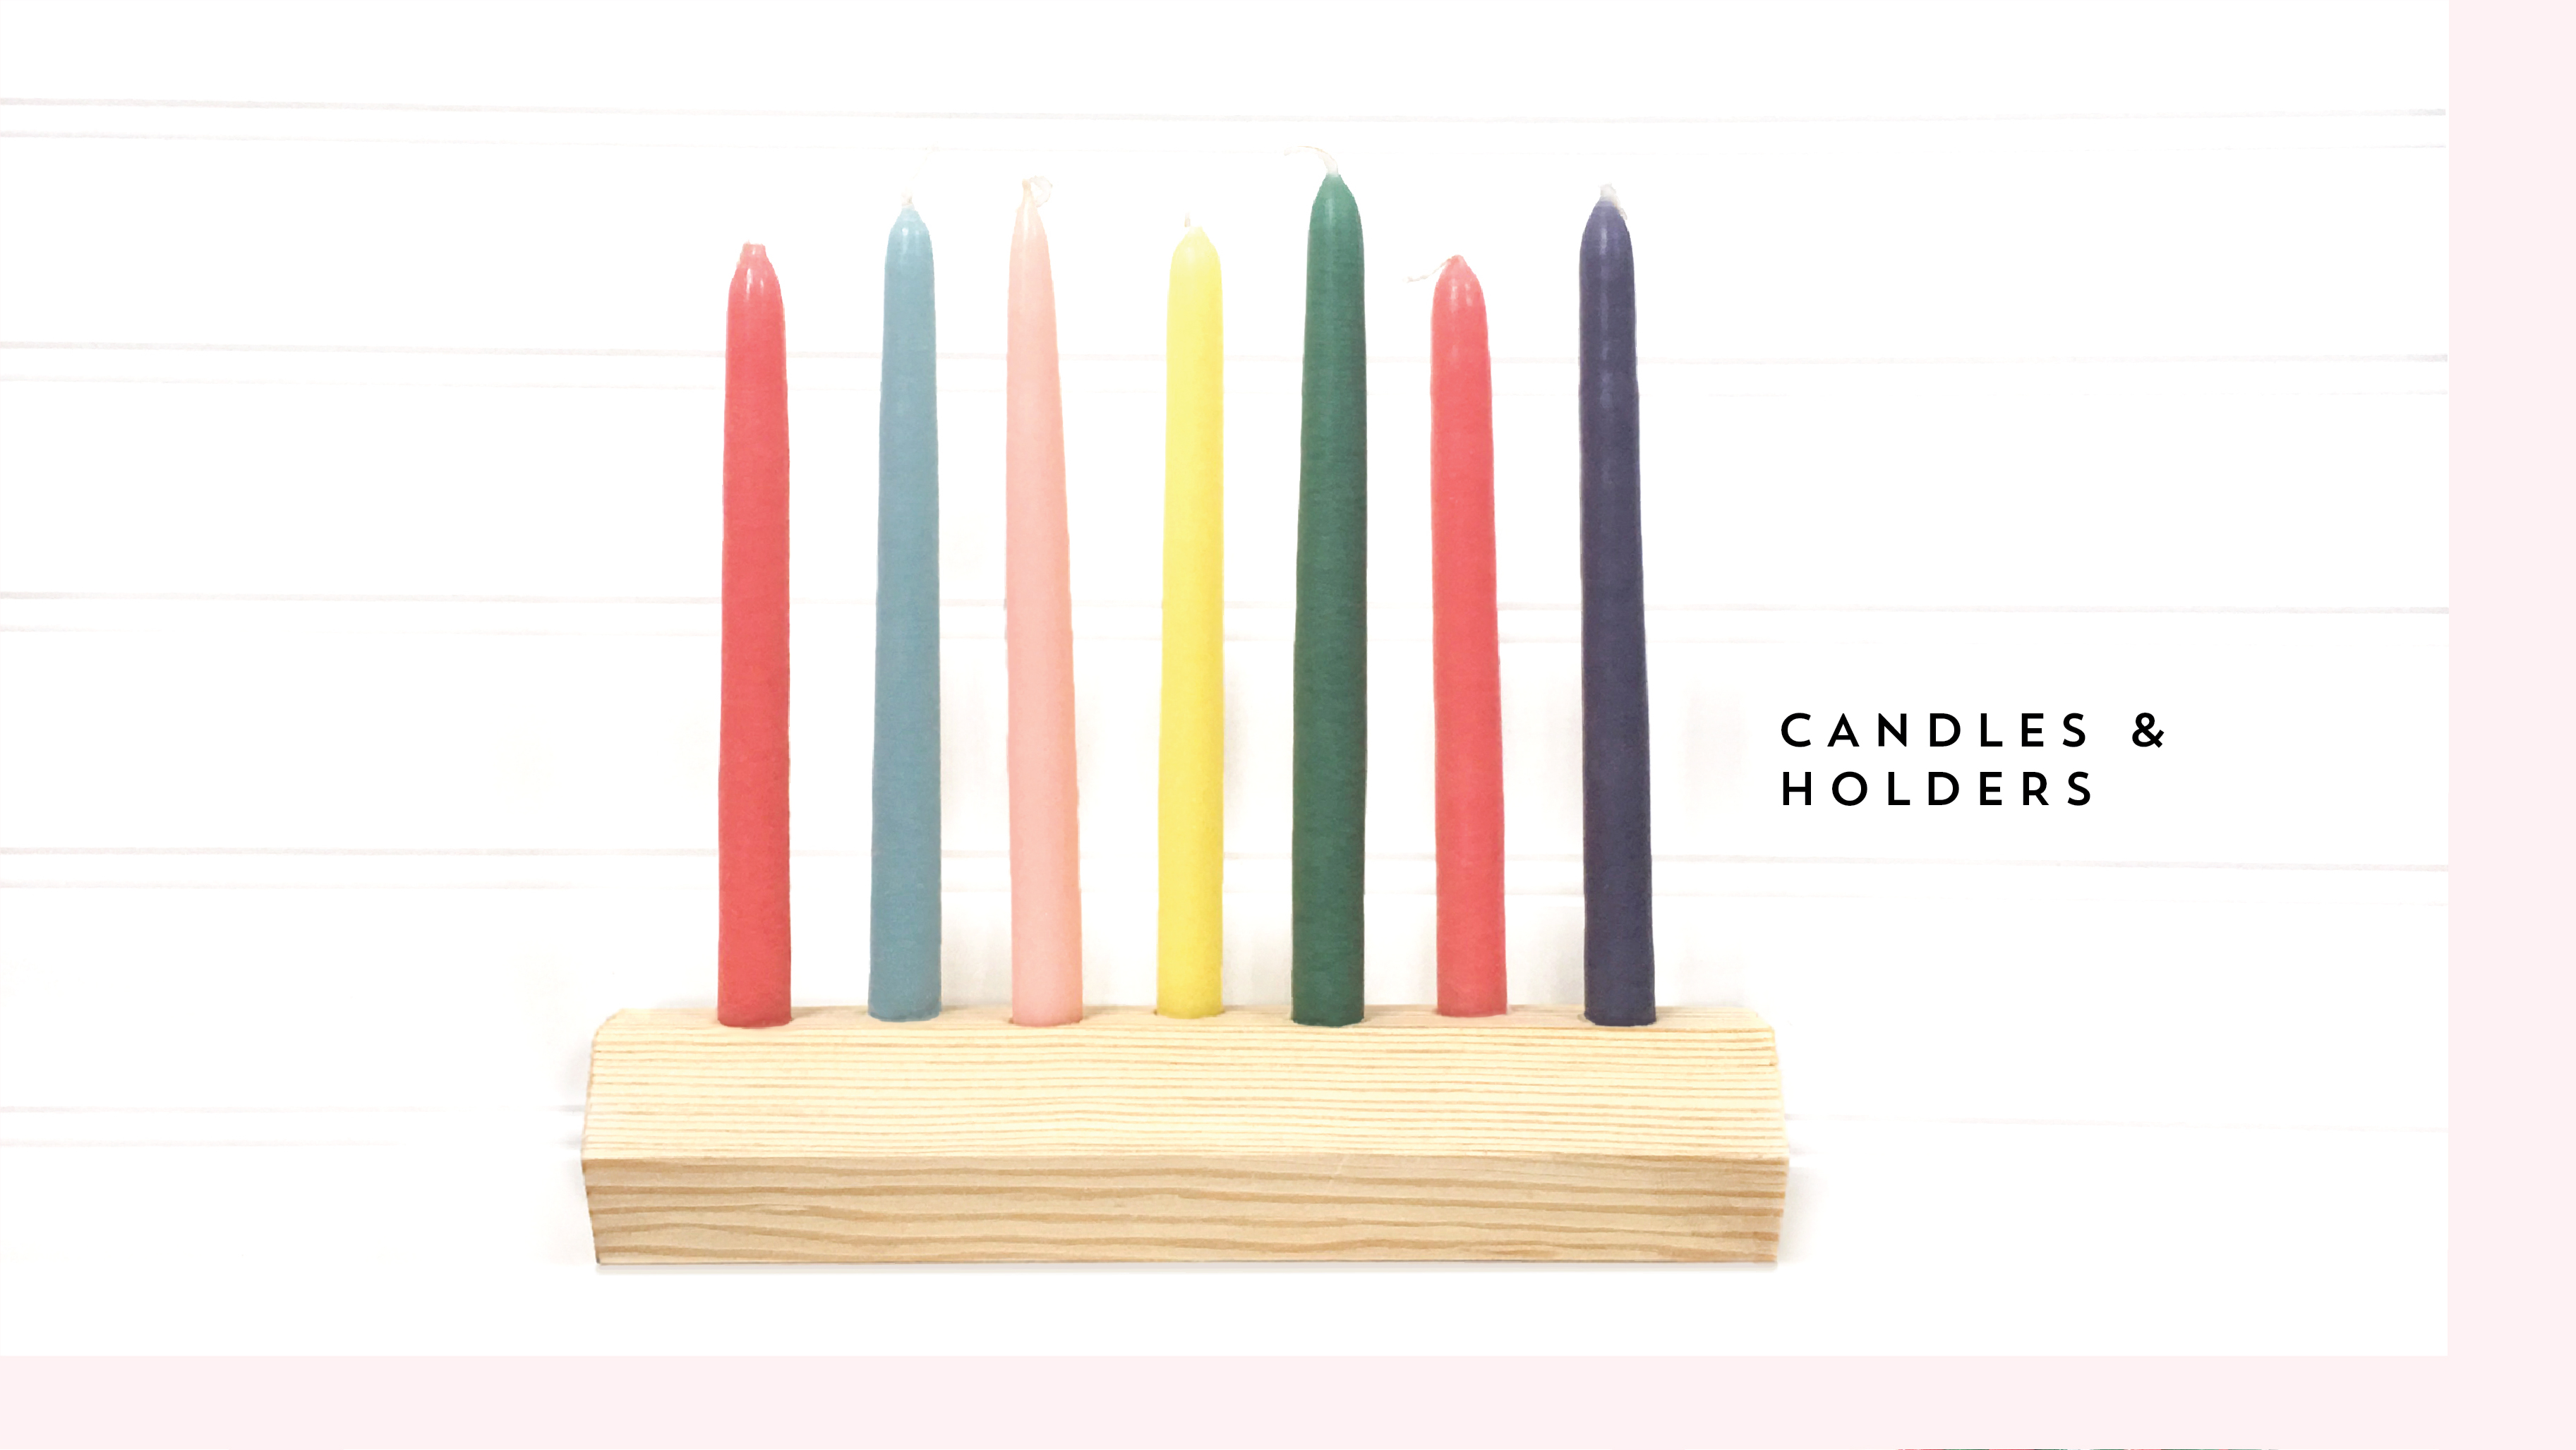 made-market-co.-internal-page-06.21.19-01-2.-candles-holders.jpg